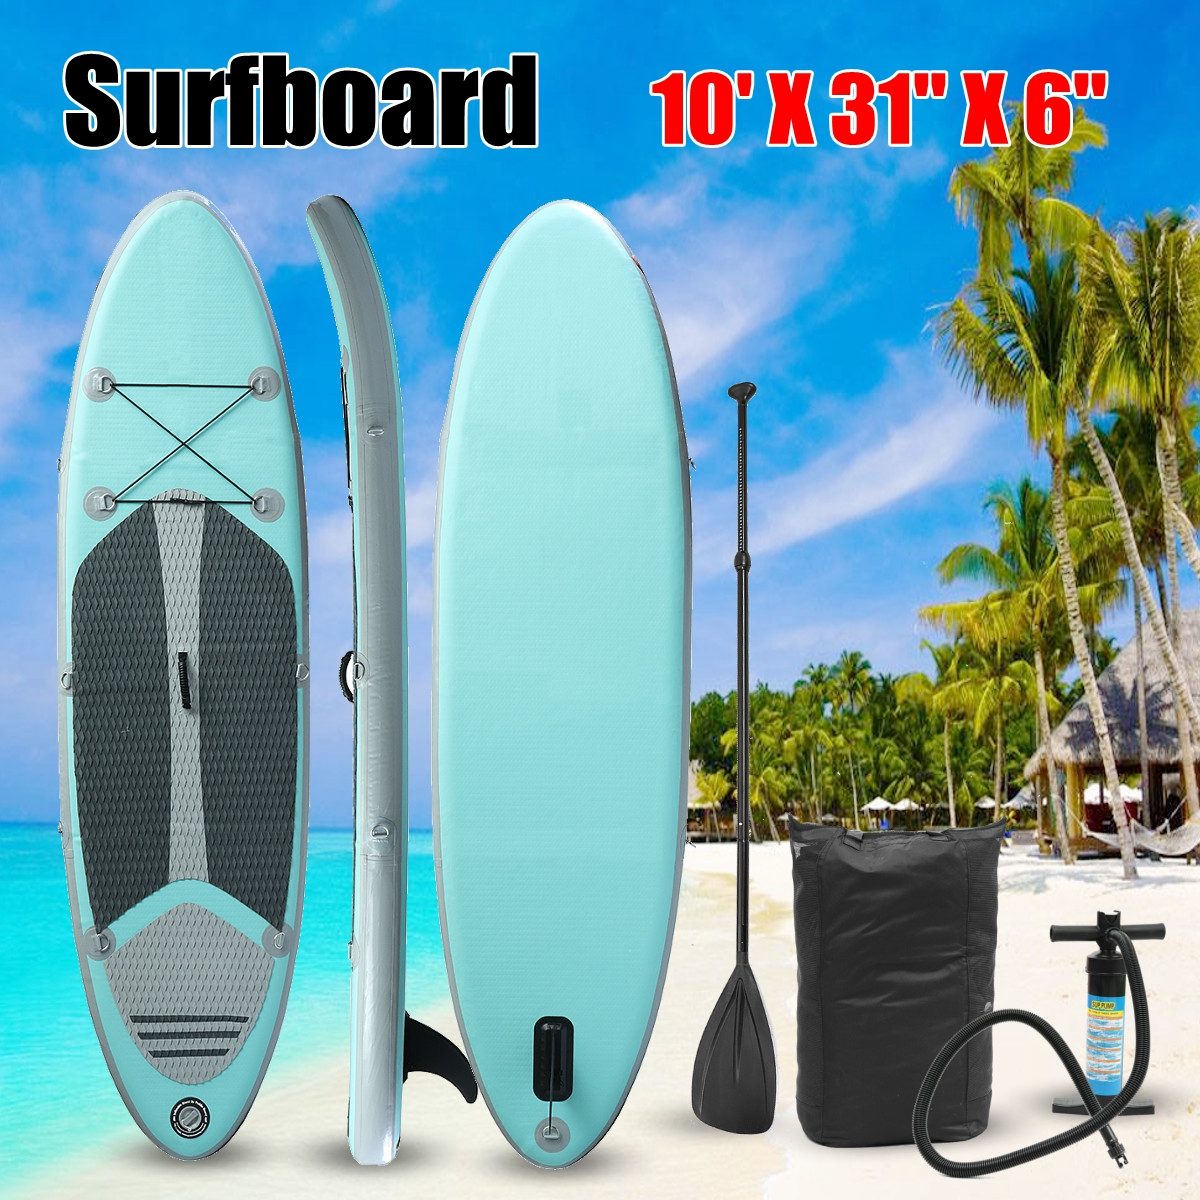 285x78x15cm SUP Board Stand Up Planche de paddle gonflable Paddling Surfboard inflatable surf board sup paddle boat